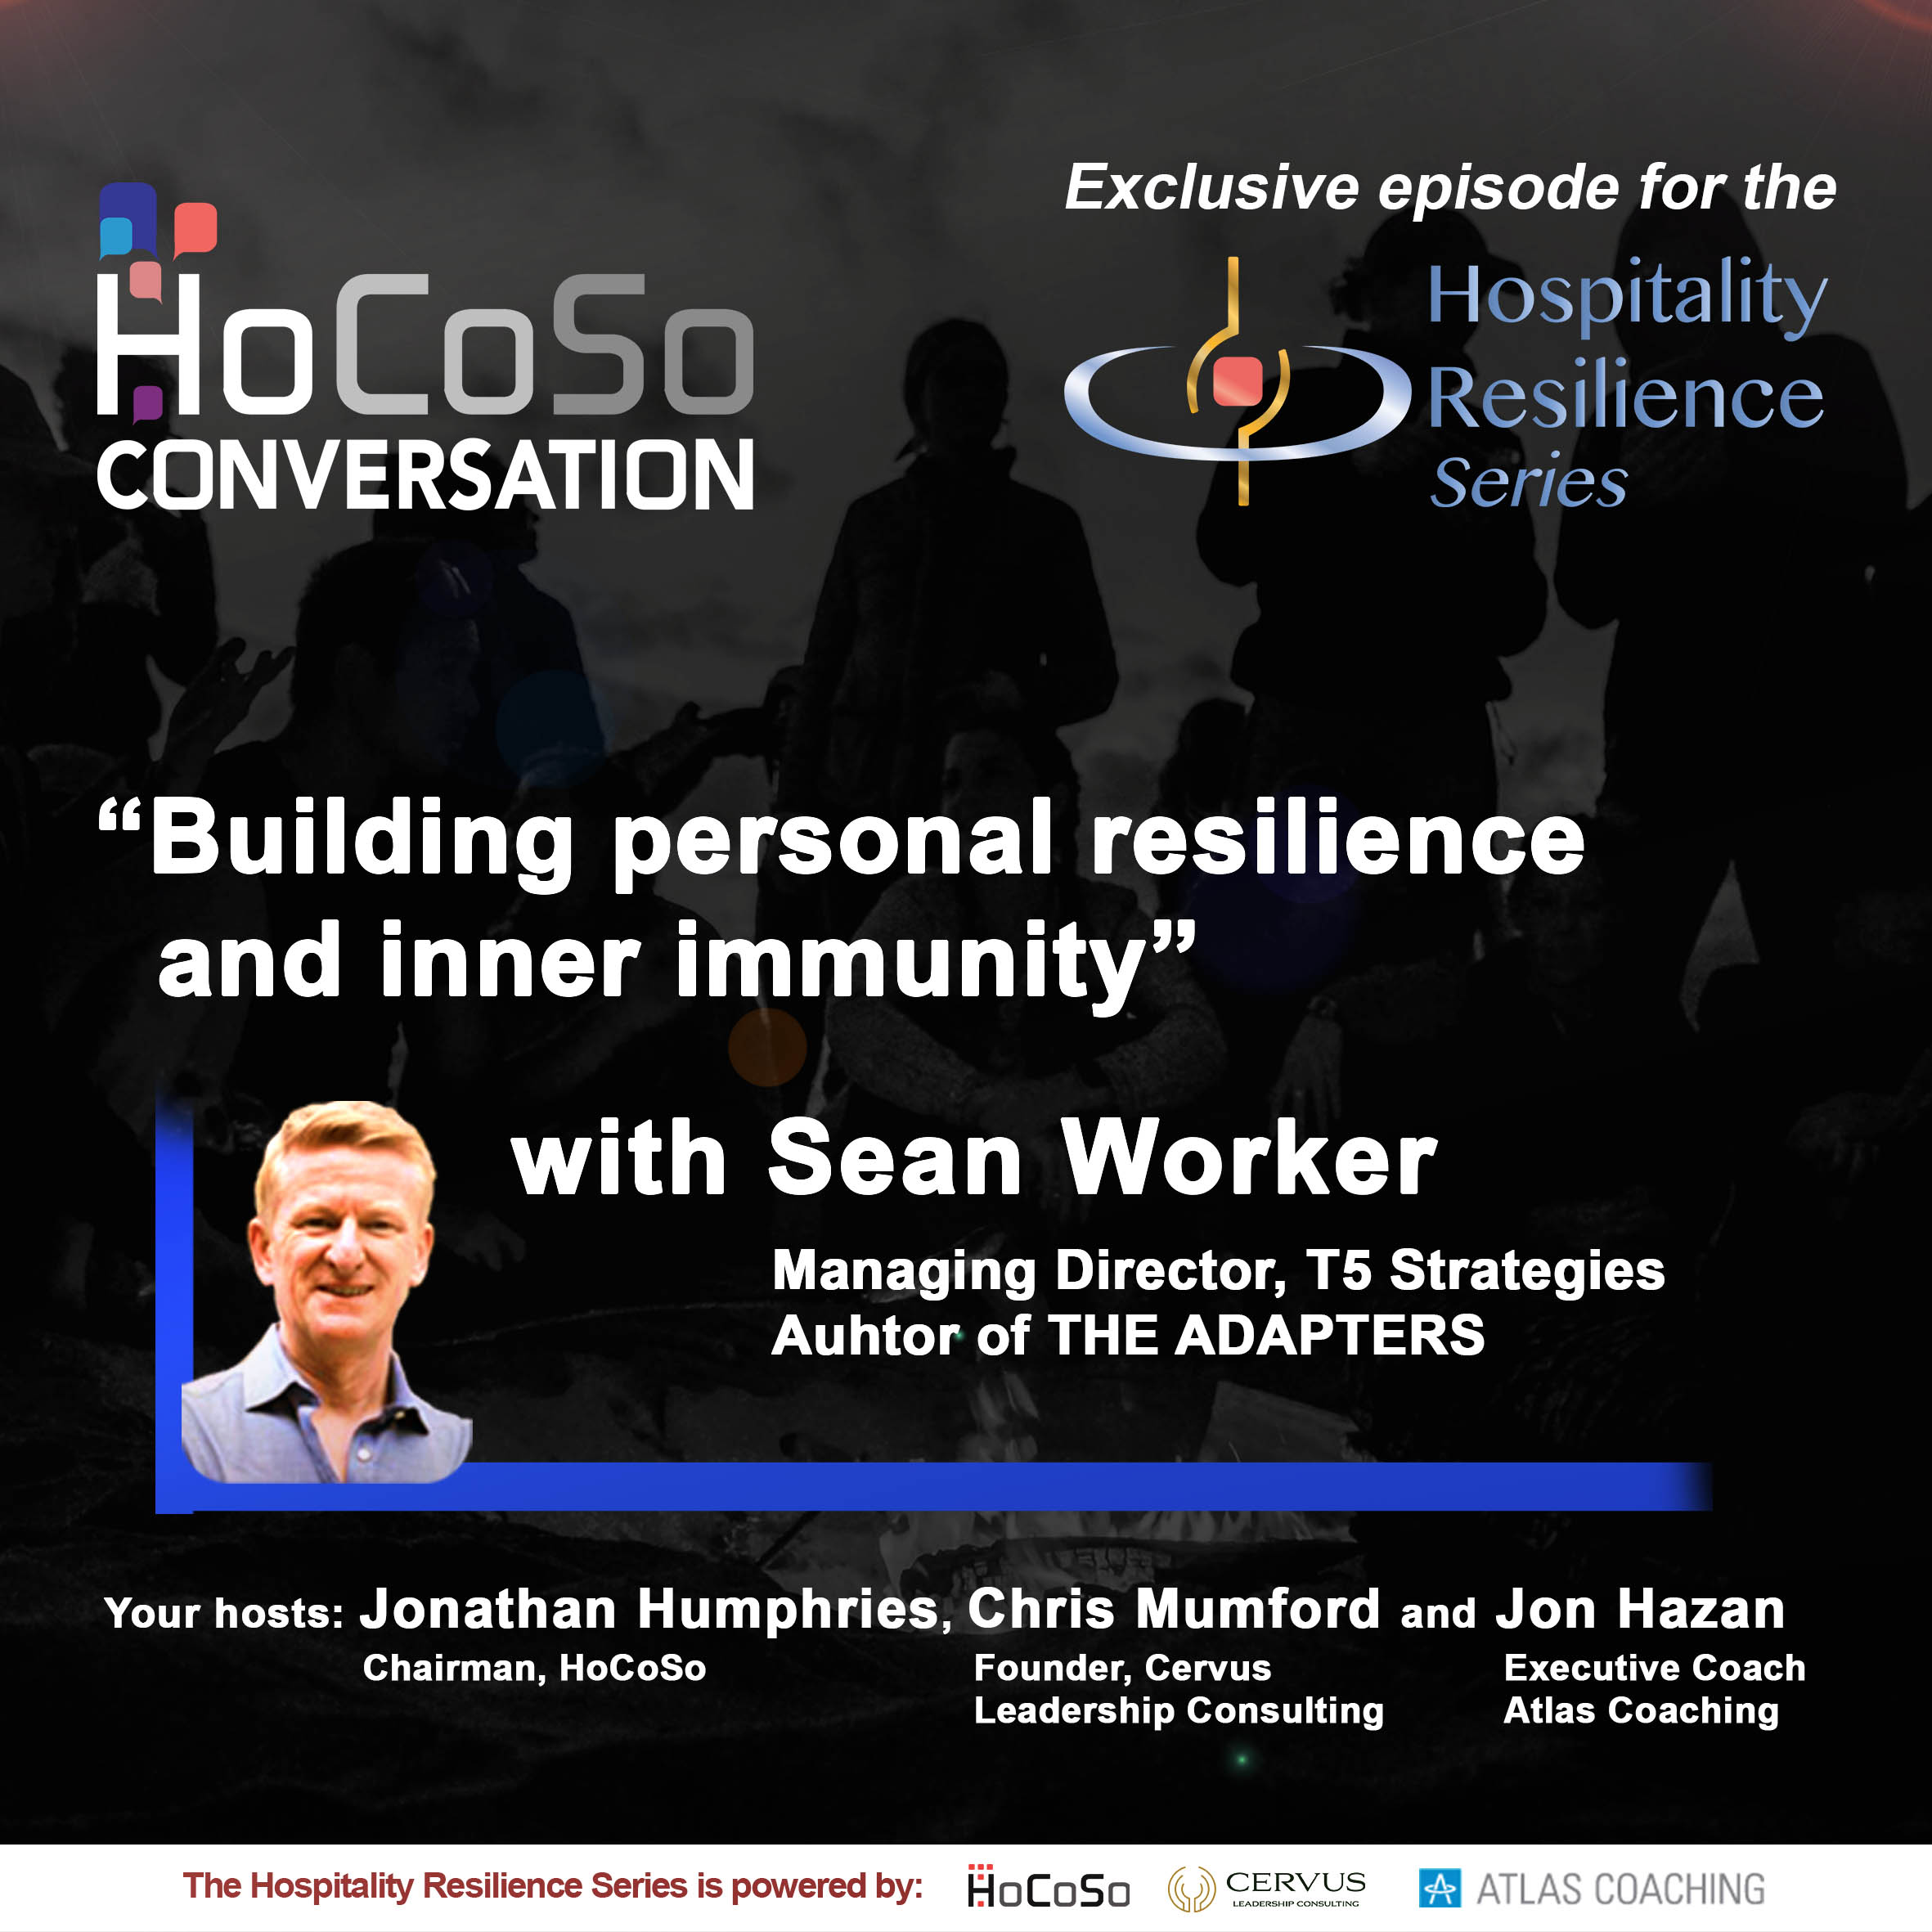 Adaptability and the need for change with Sean Worker